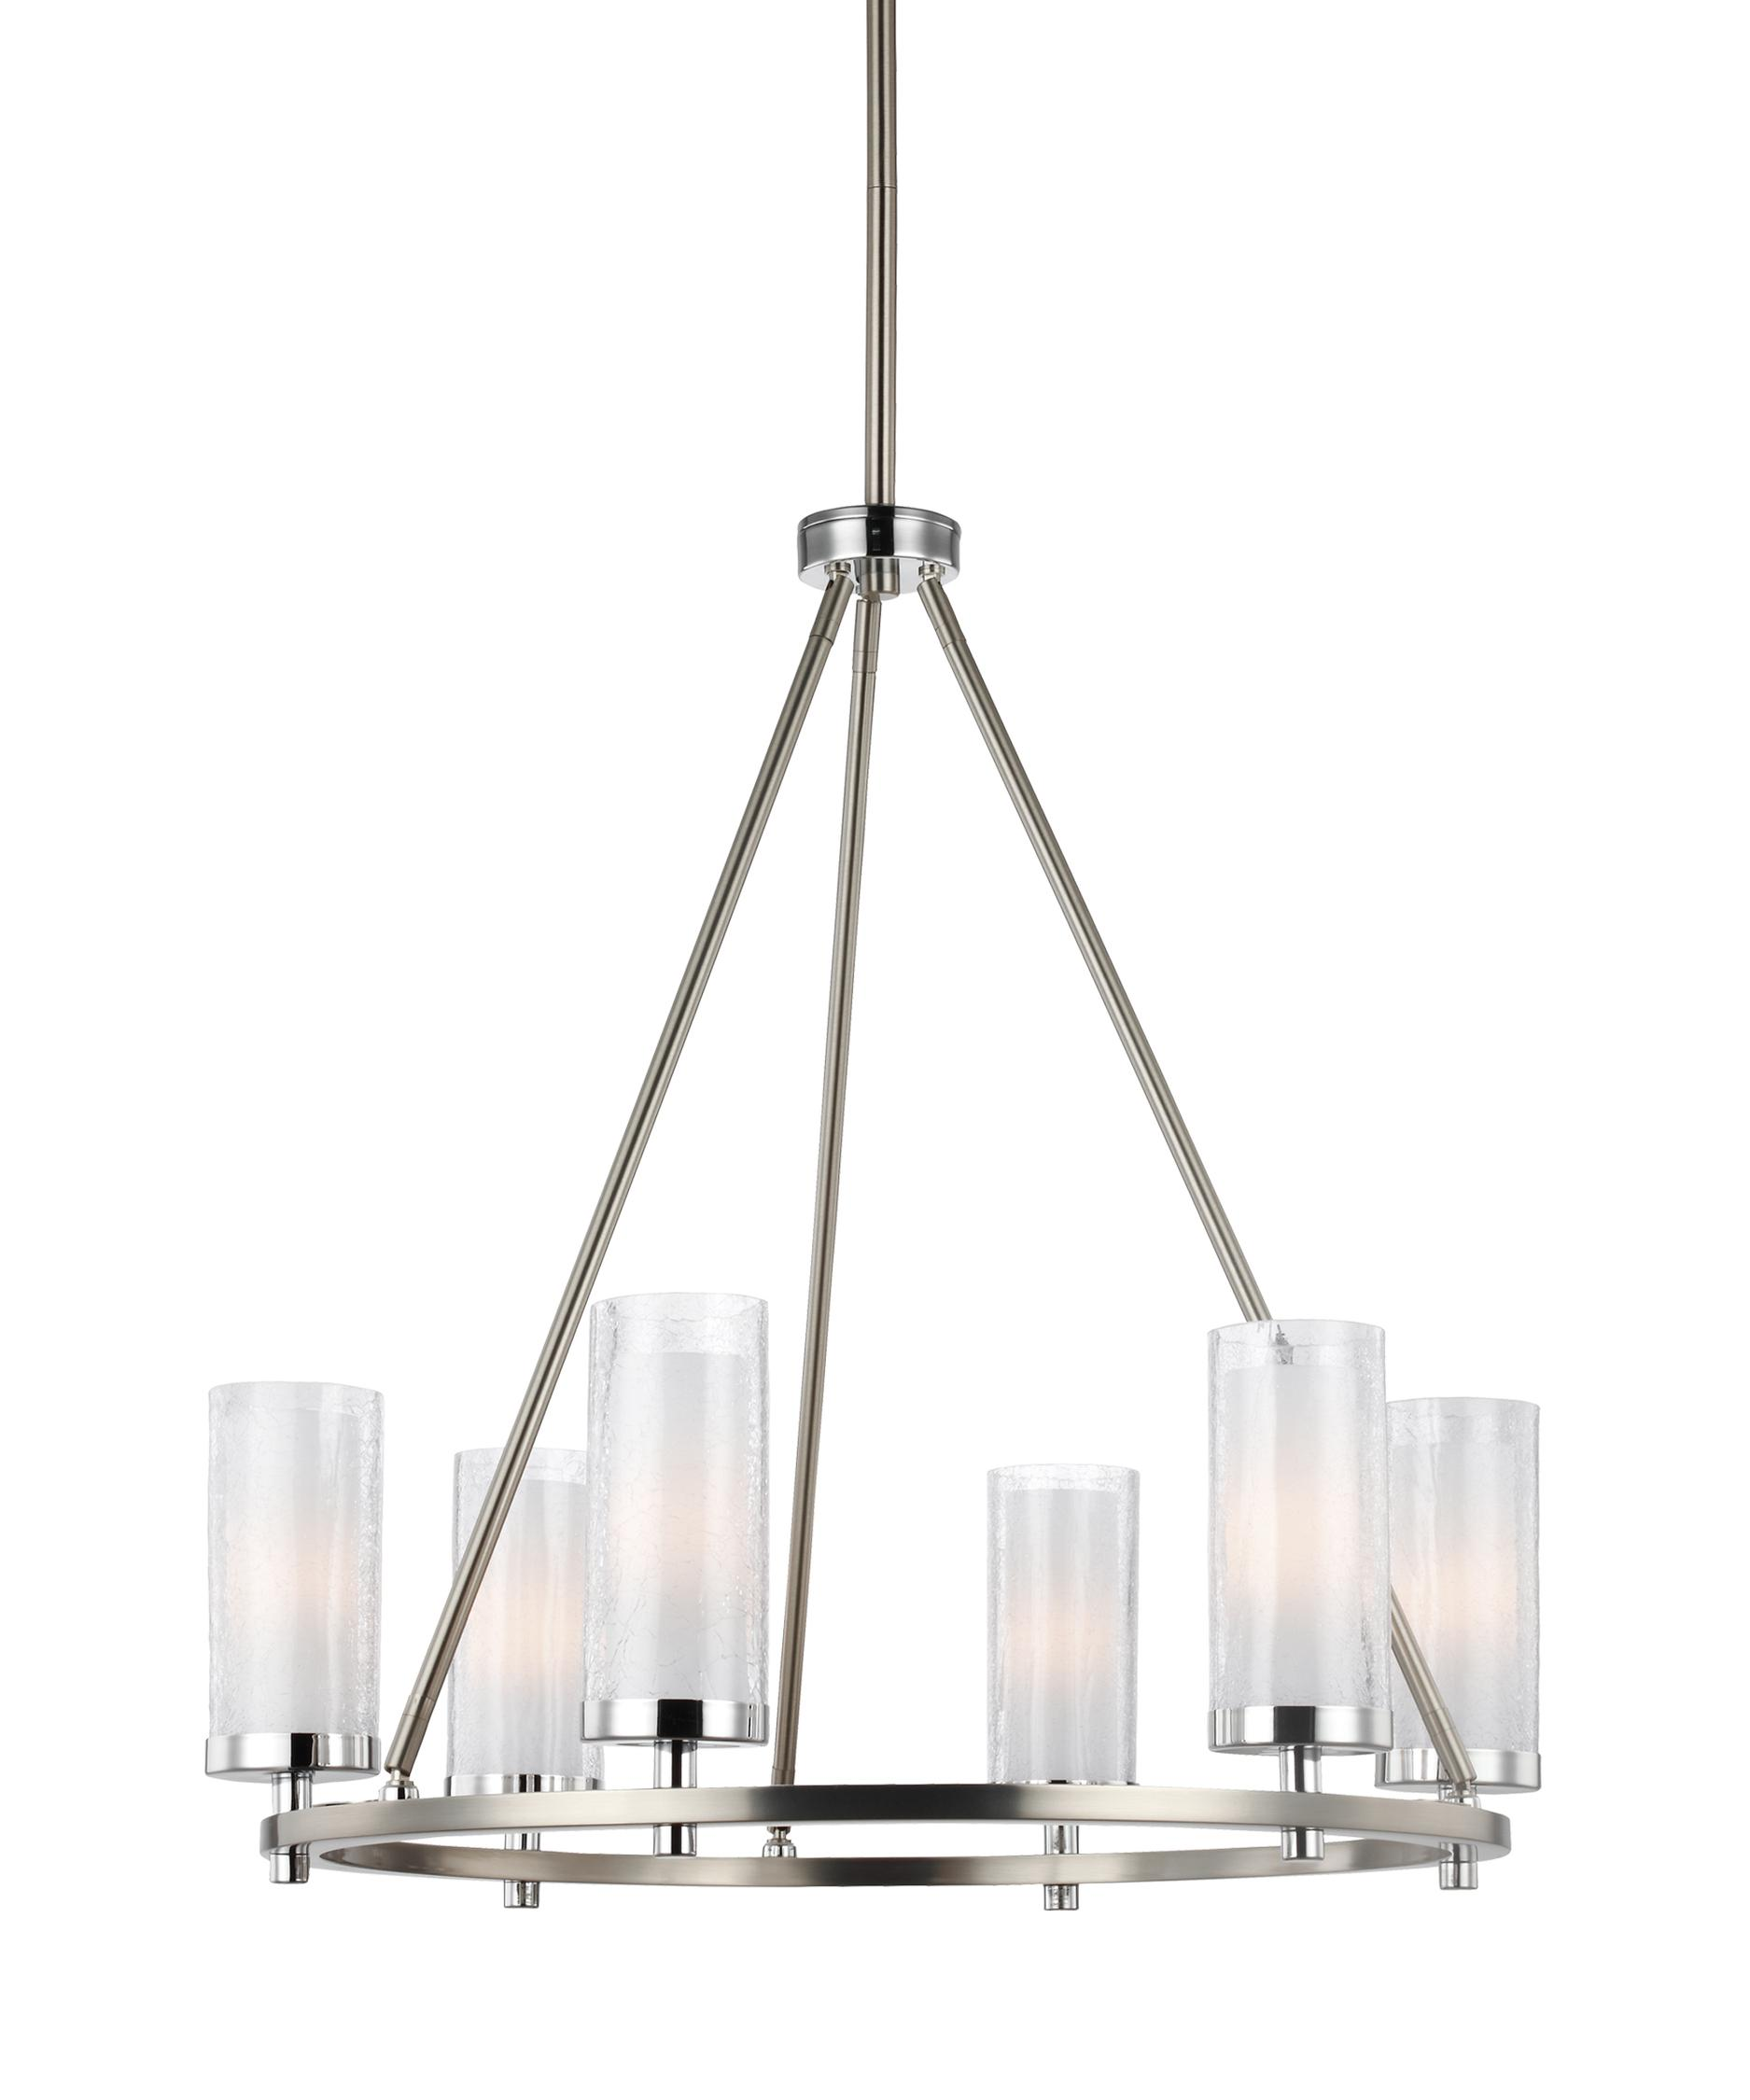 Murray Feiss Jonah 25 Inch Wide 6 Light Chandelier – Murray Feiss Chandeliers